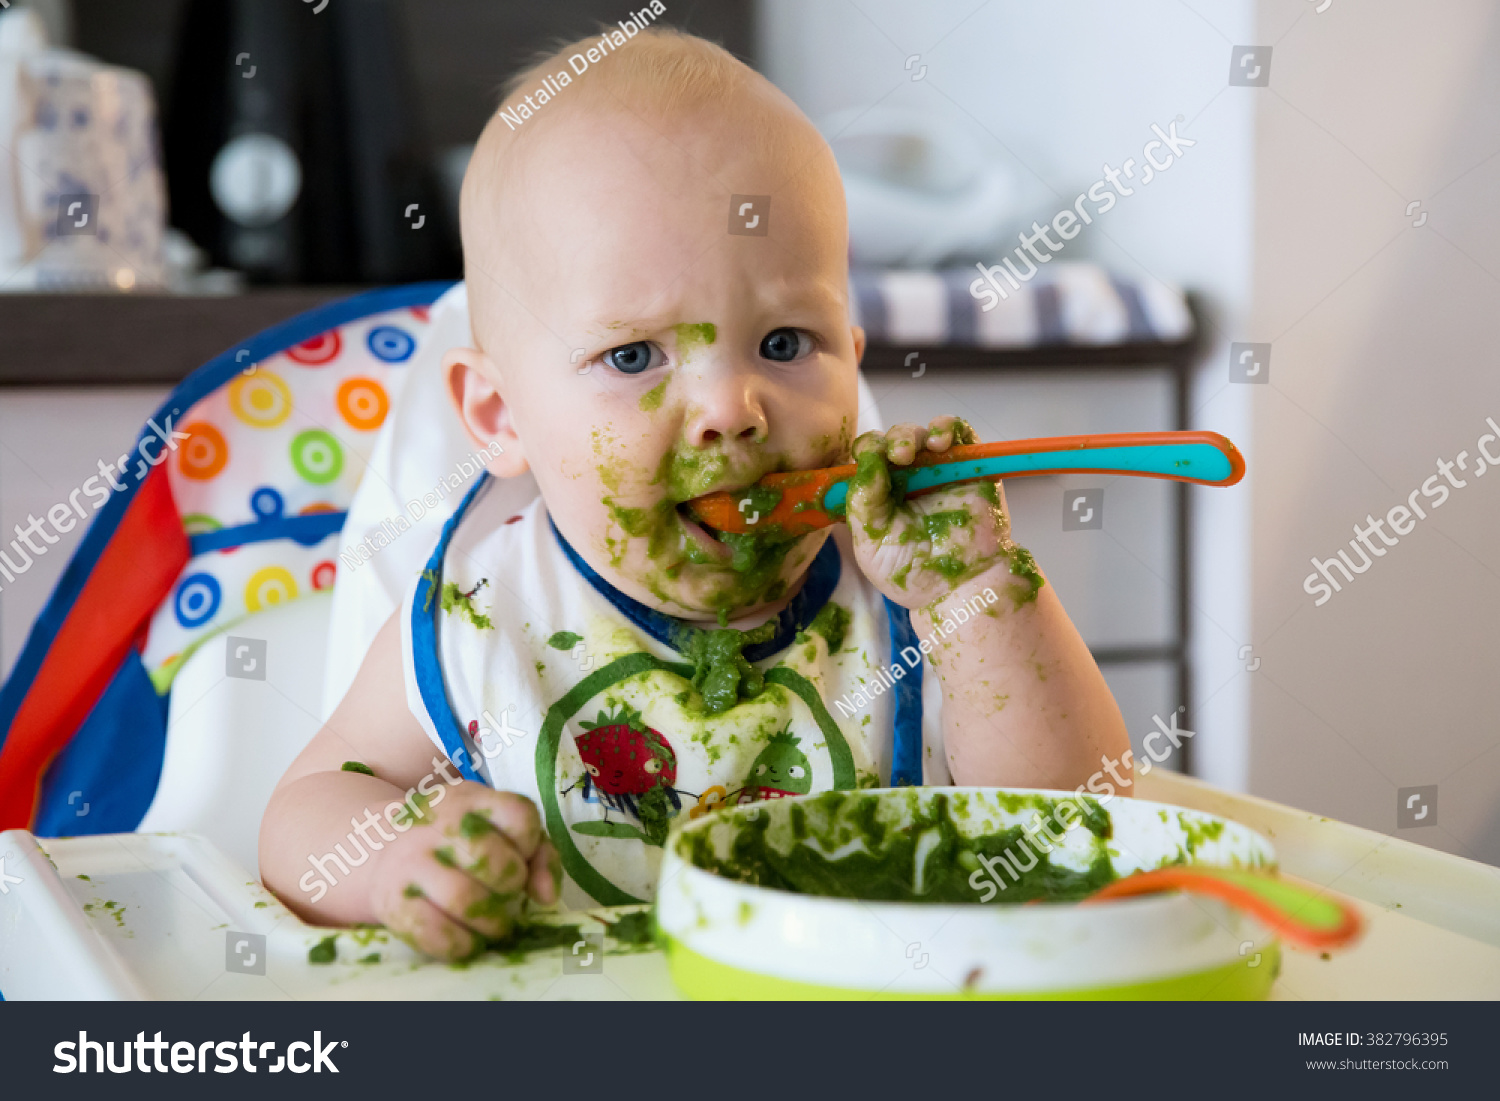 Baby Food Chair Feeding Adorable Baby Child Eating Spoon Stock Photo